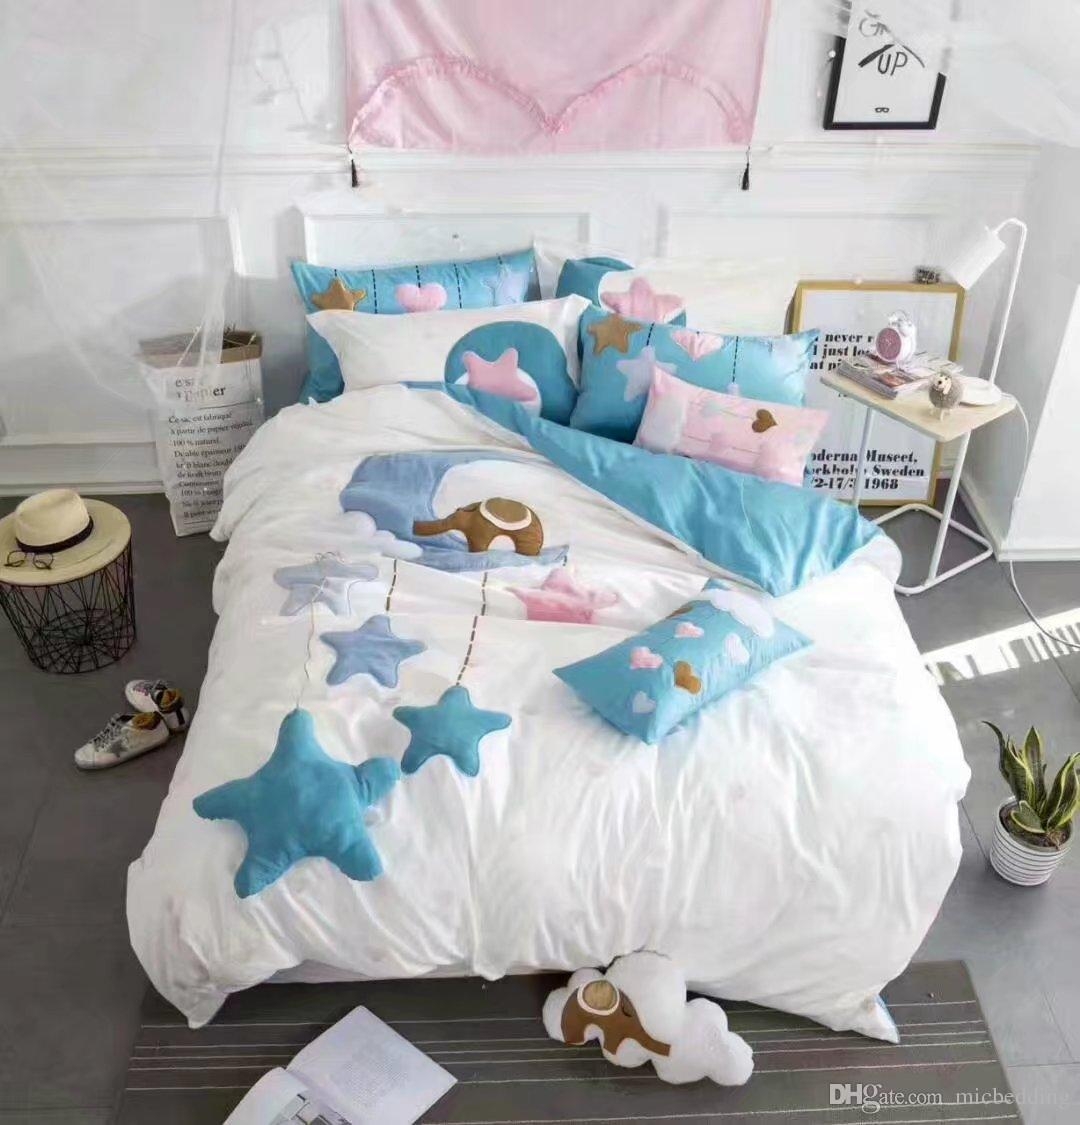 Bed Linen Star Applique Embroidery Cotton Fabric Designs Finish Bed Linen Bed Sheet Four Pieces Bedding Set Blue Red Color Luxuary Designs